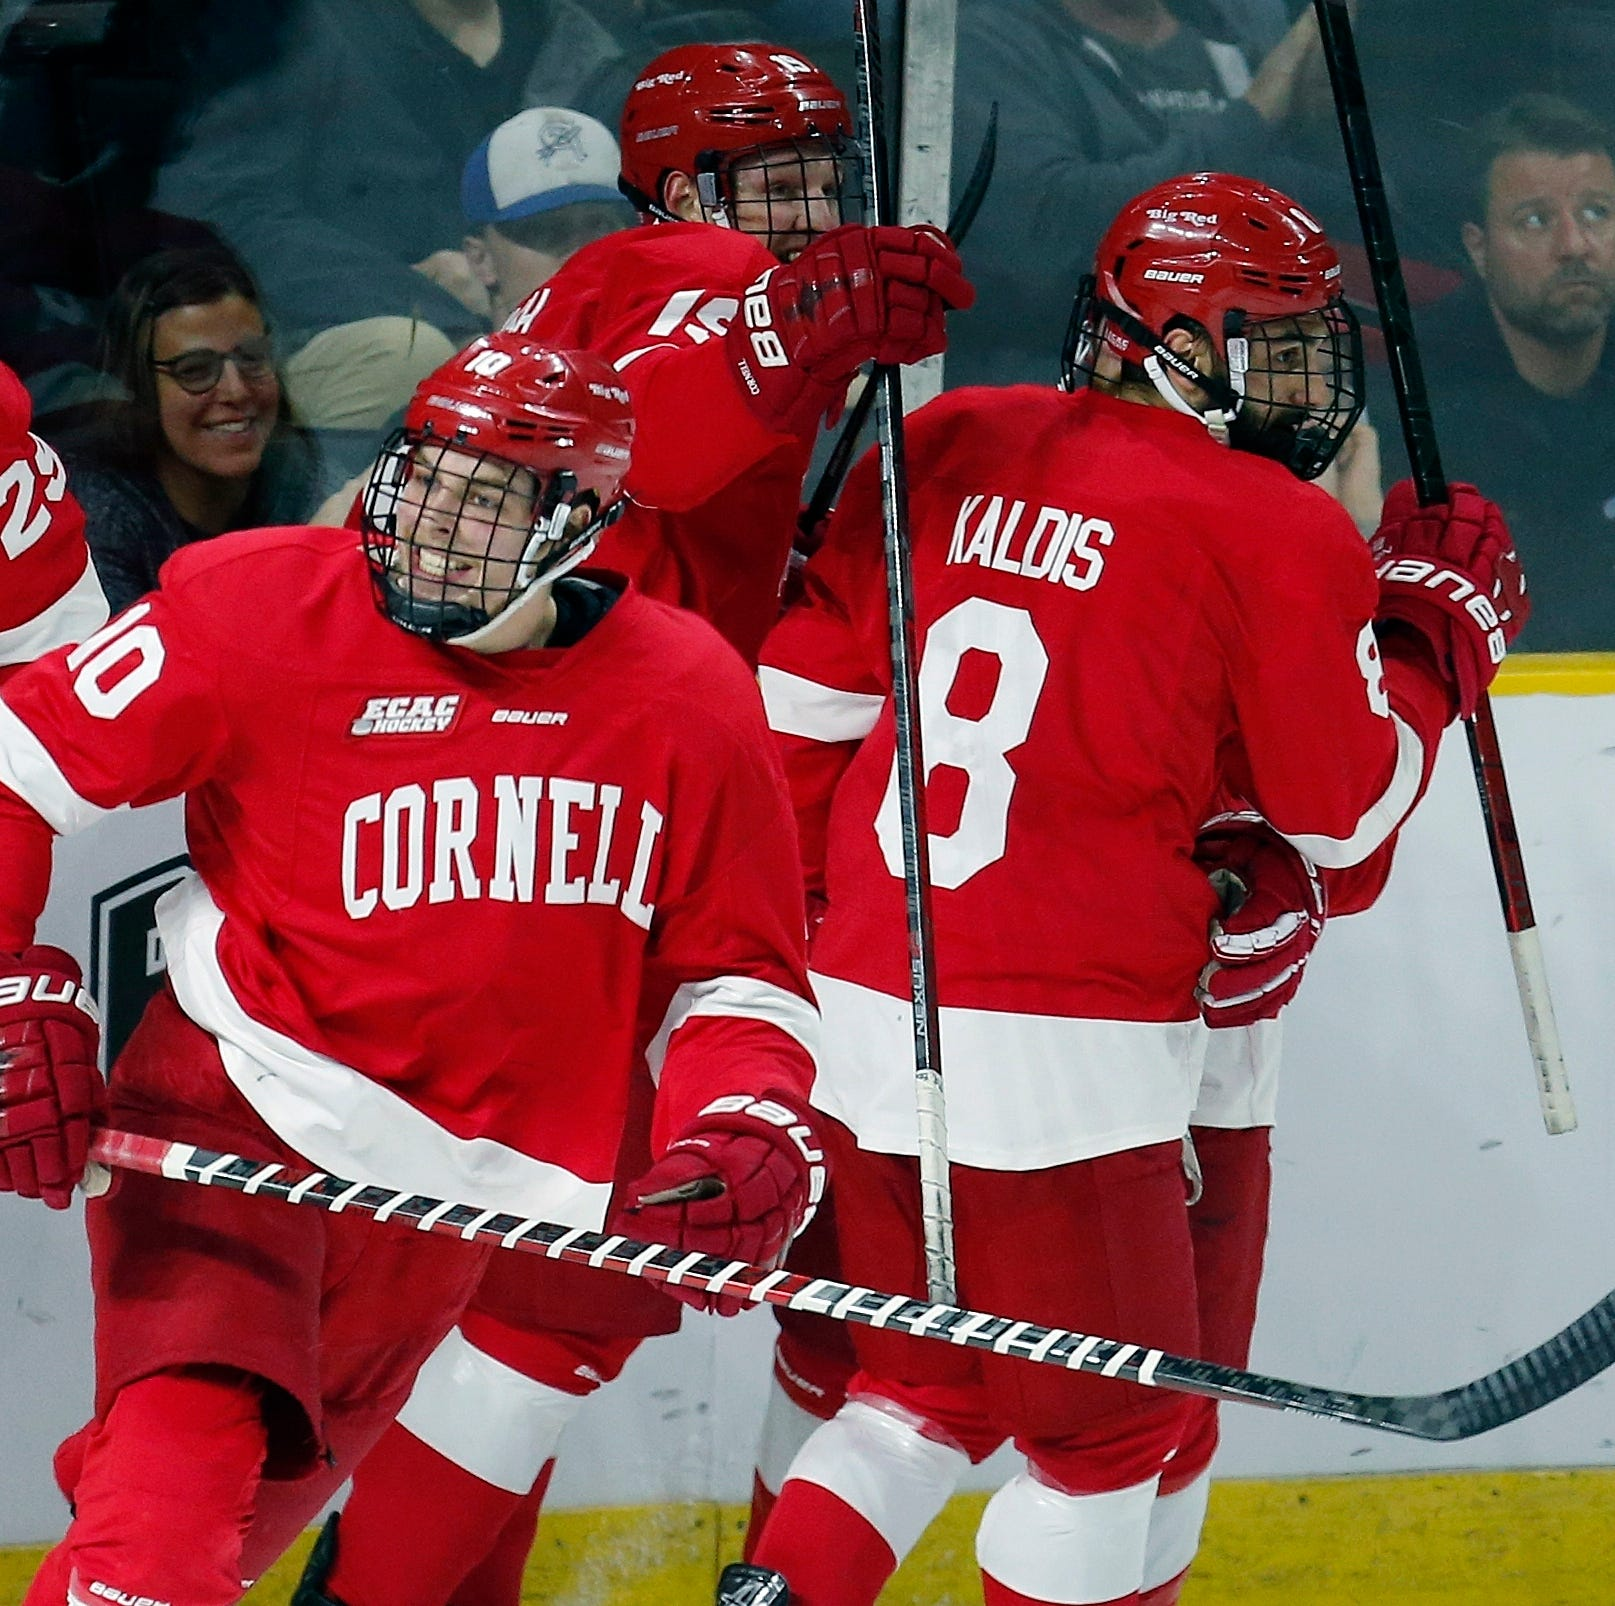 Cornell University blows out Northeastern, one win away from Frozen Four